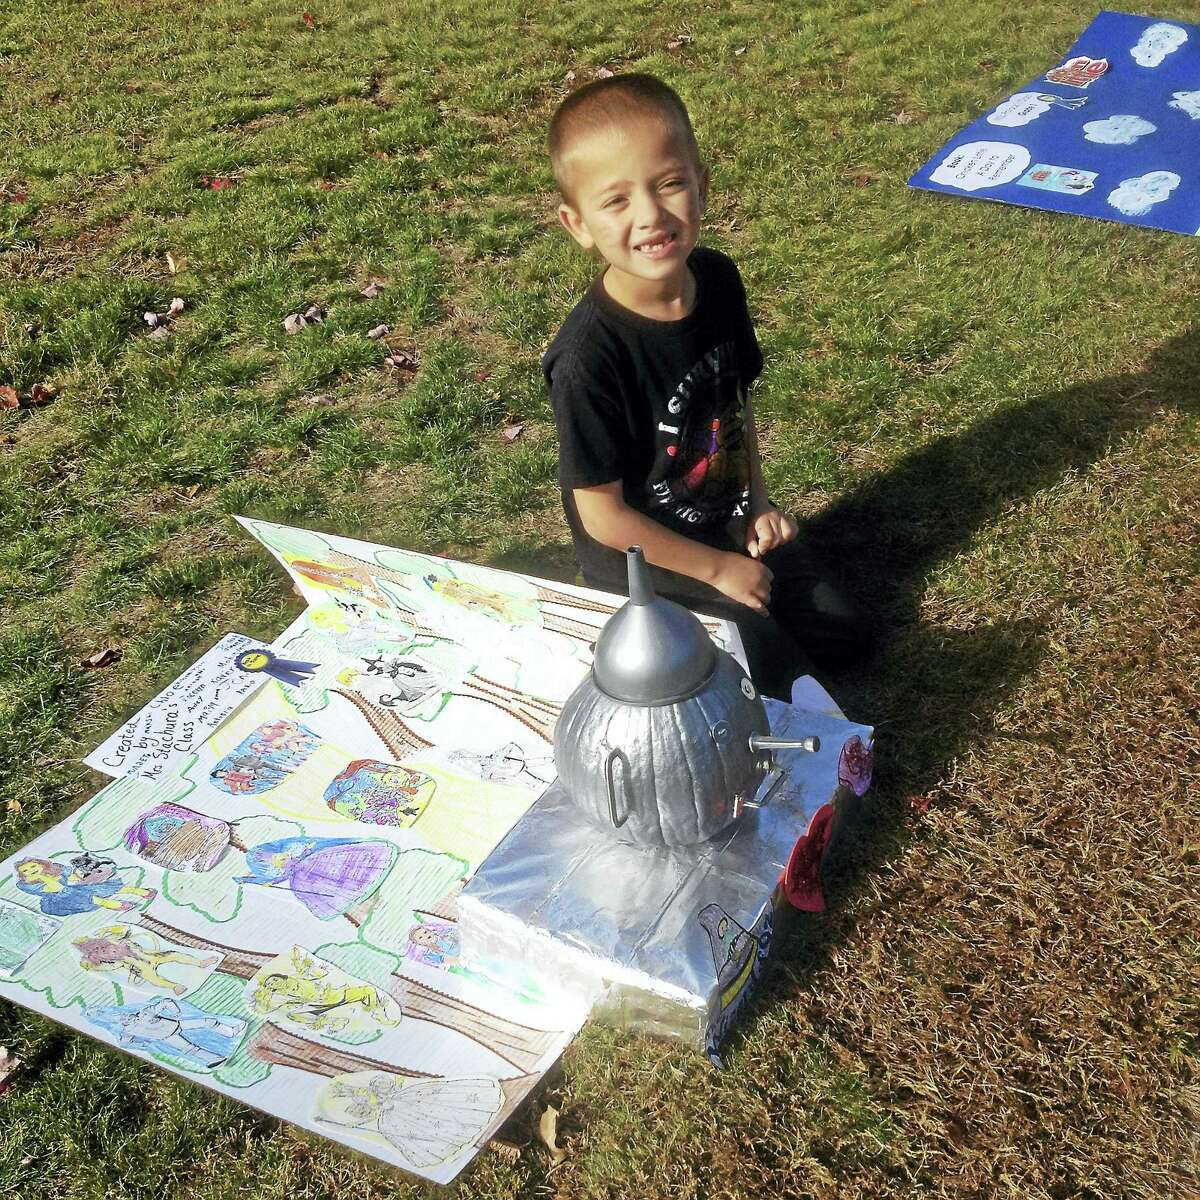 Edna C. Stevens Elementary School second-grader Dante sits with his brother Dario's class pumpkin, the Tin Man. The Halloween project, spearheaded by Cromwell teacher Karen Ambler, combined literacy with creativity.